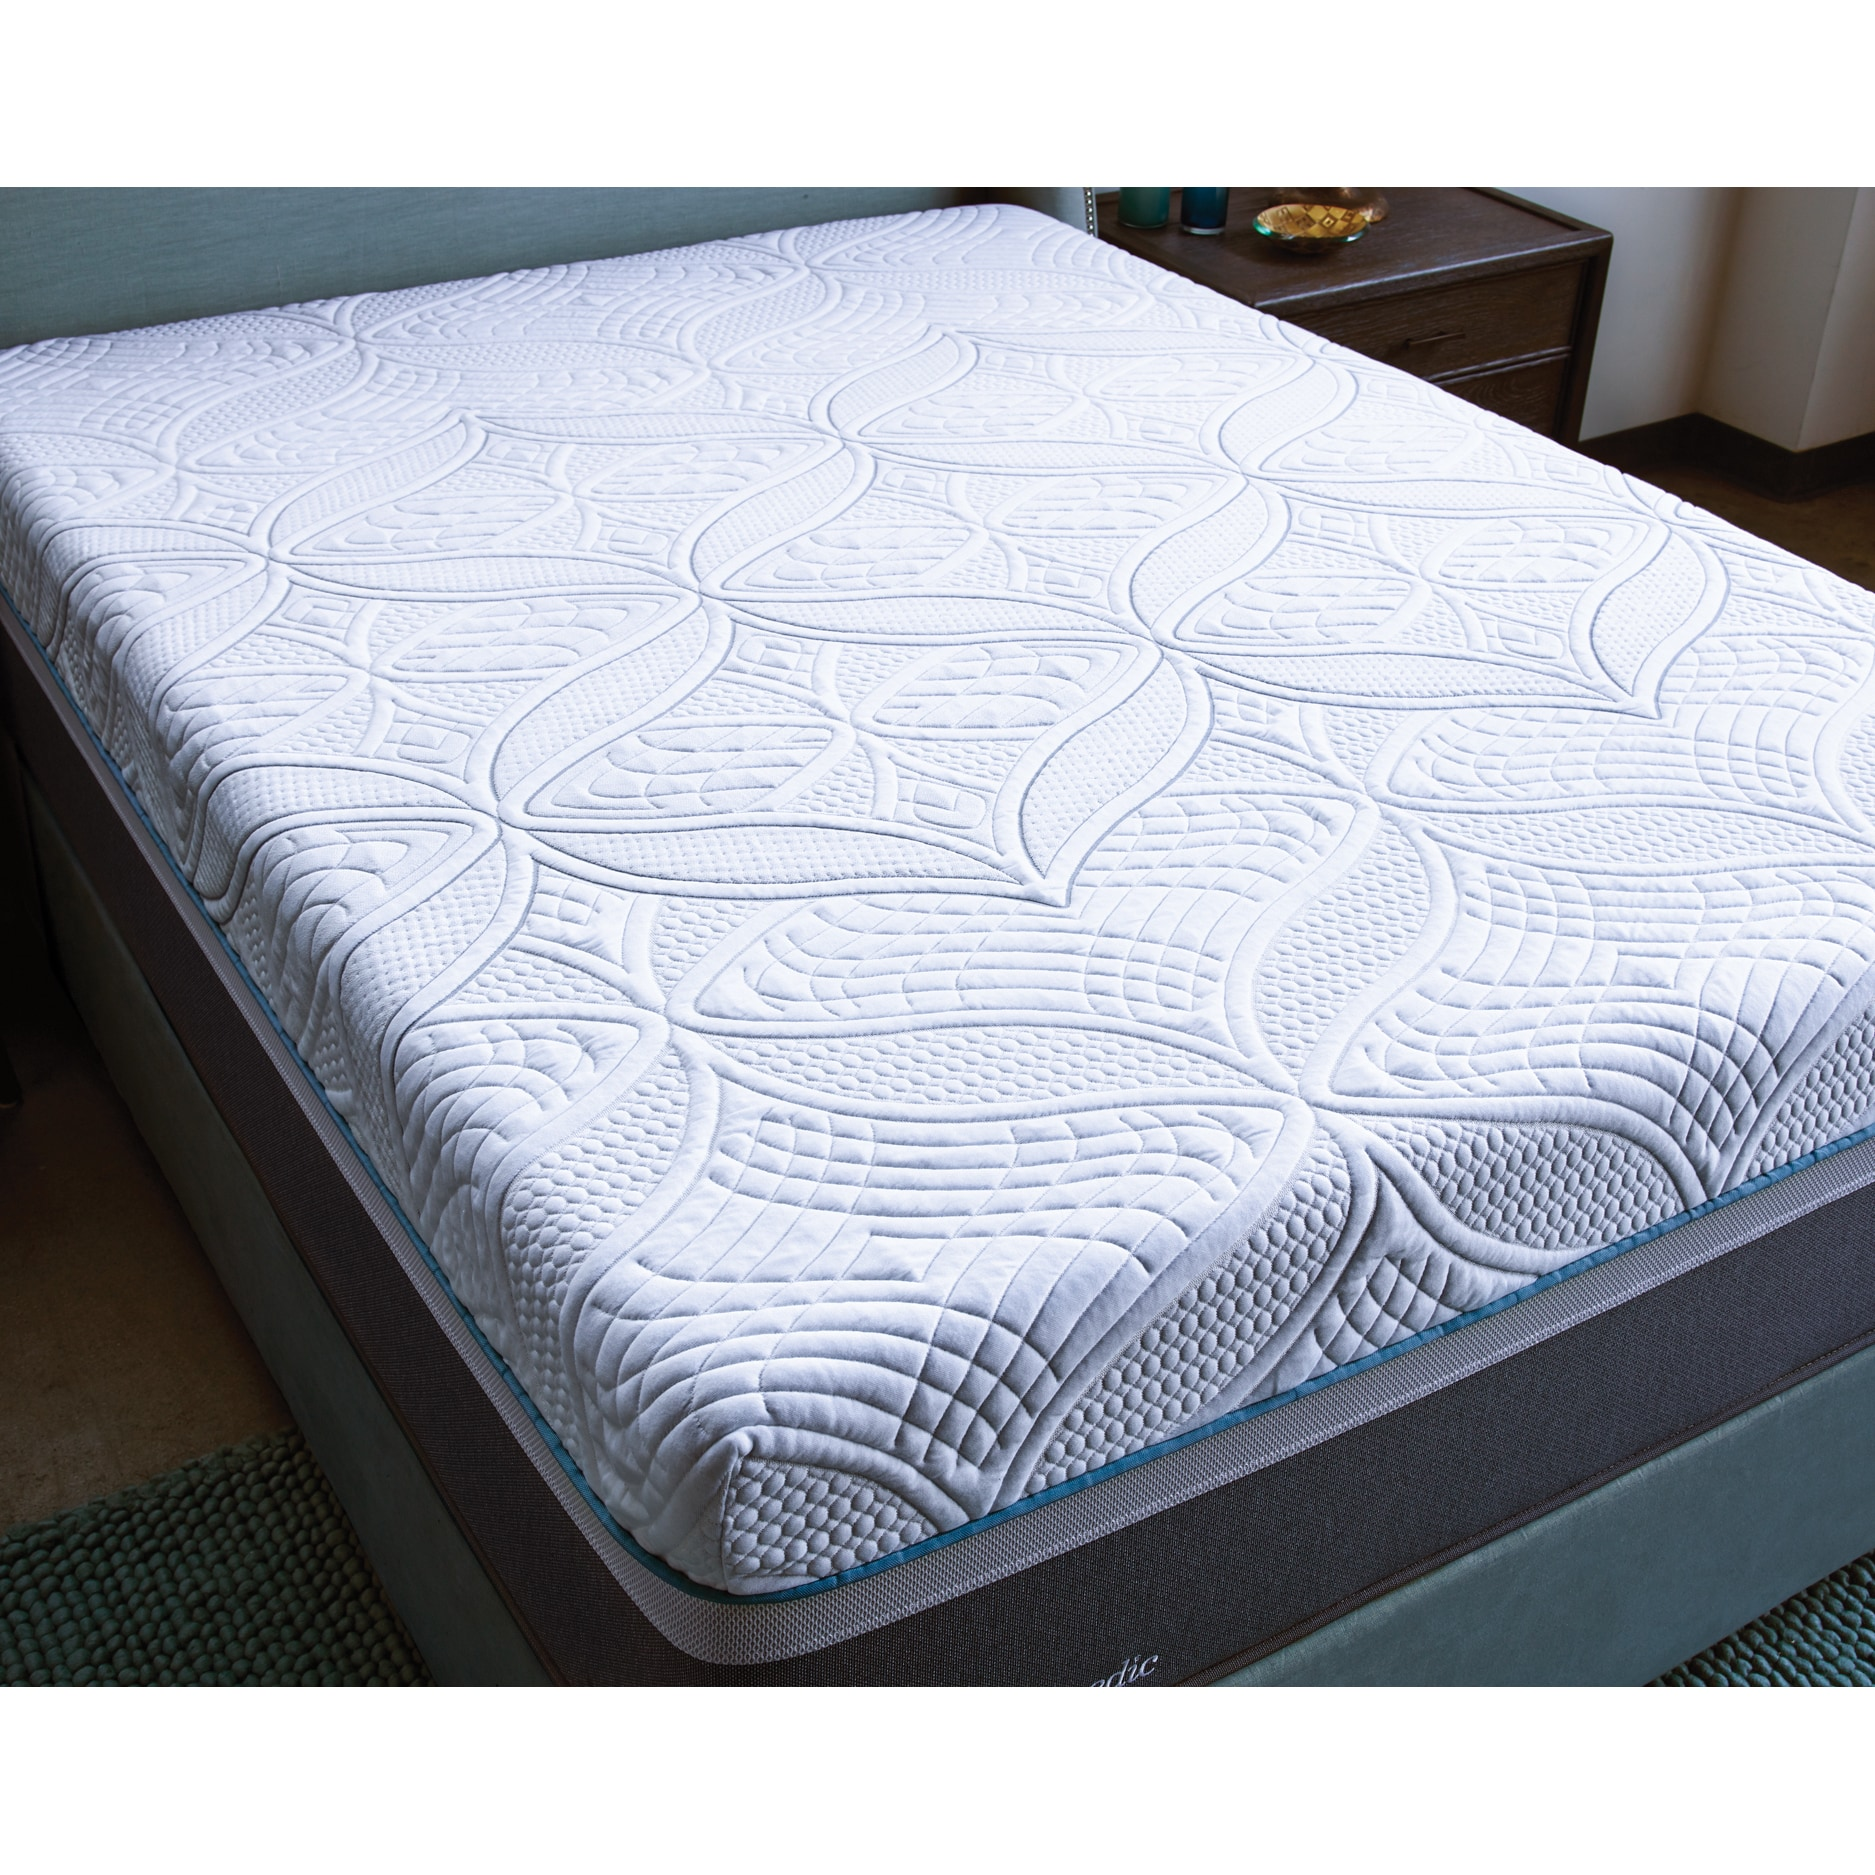 Sealy Posturepedic Hybrid Silver Plush King Mattress Free